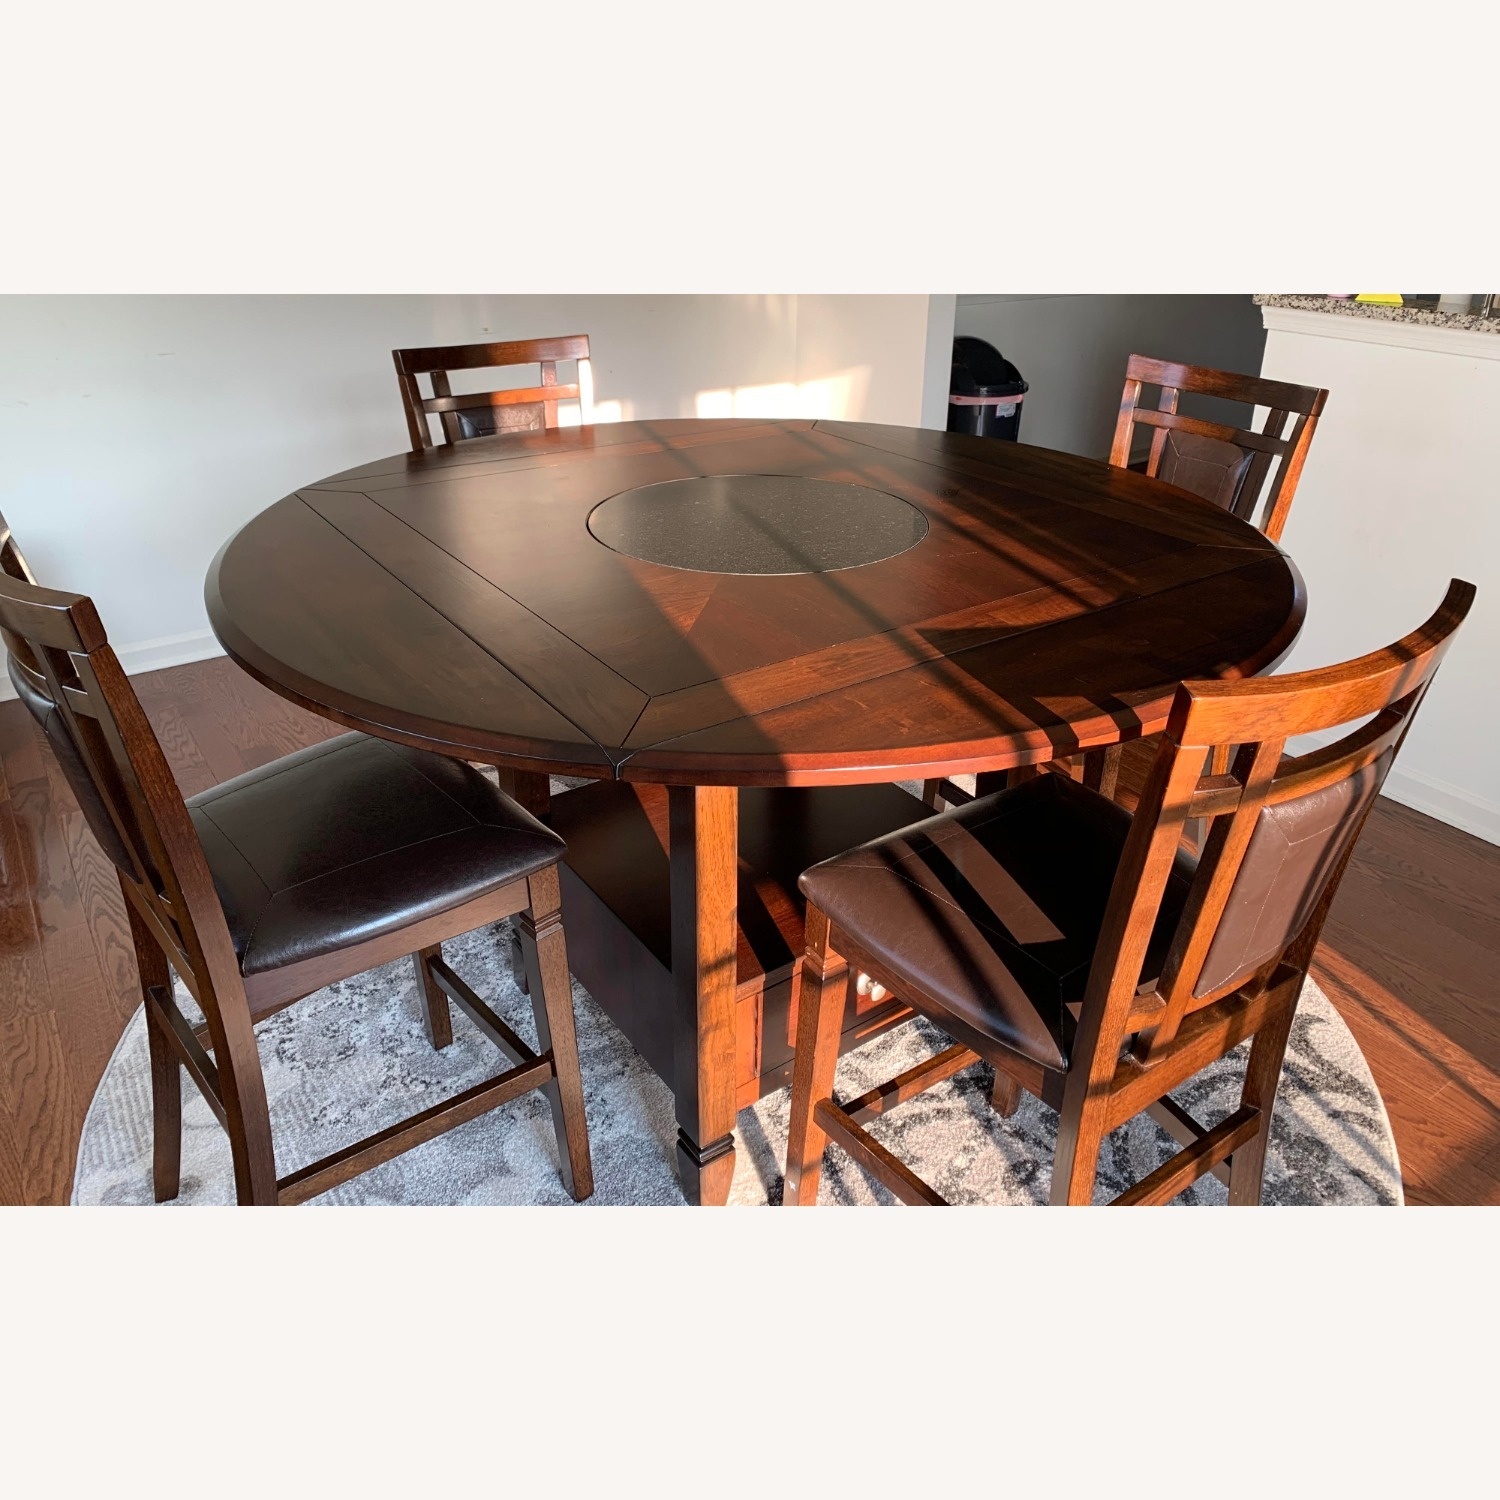 5 Piece Drop Leaf Counter Height Dining Set - image-1